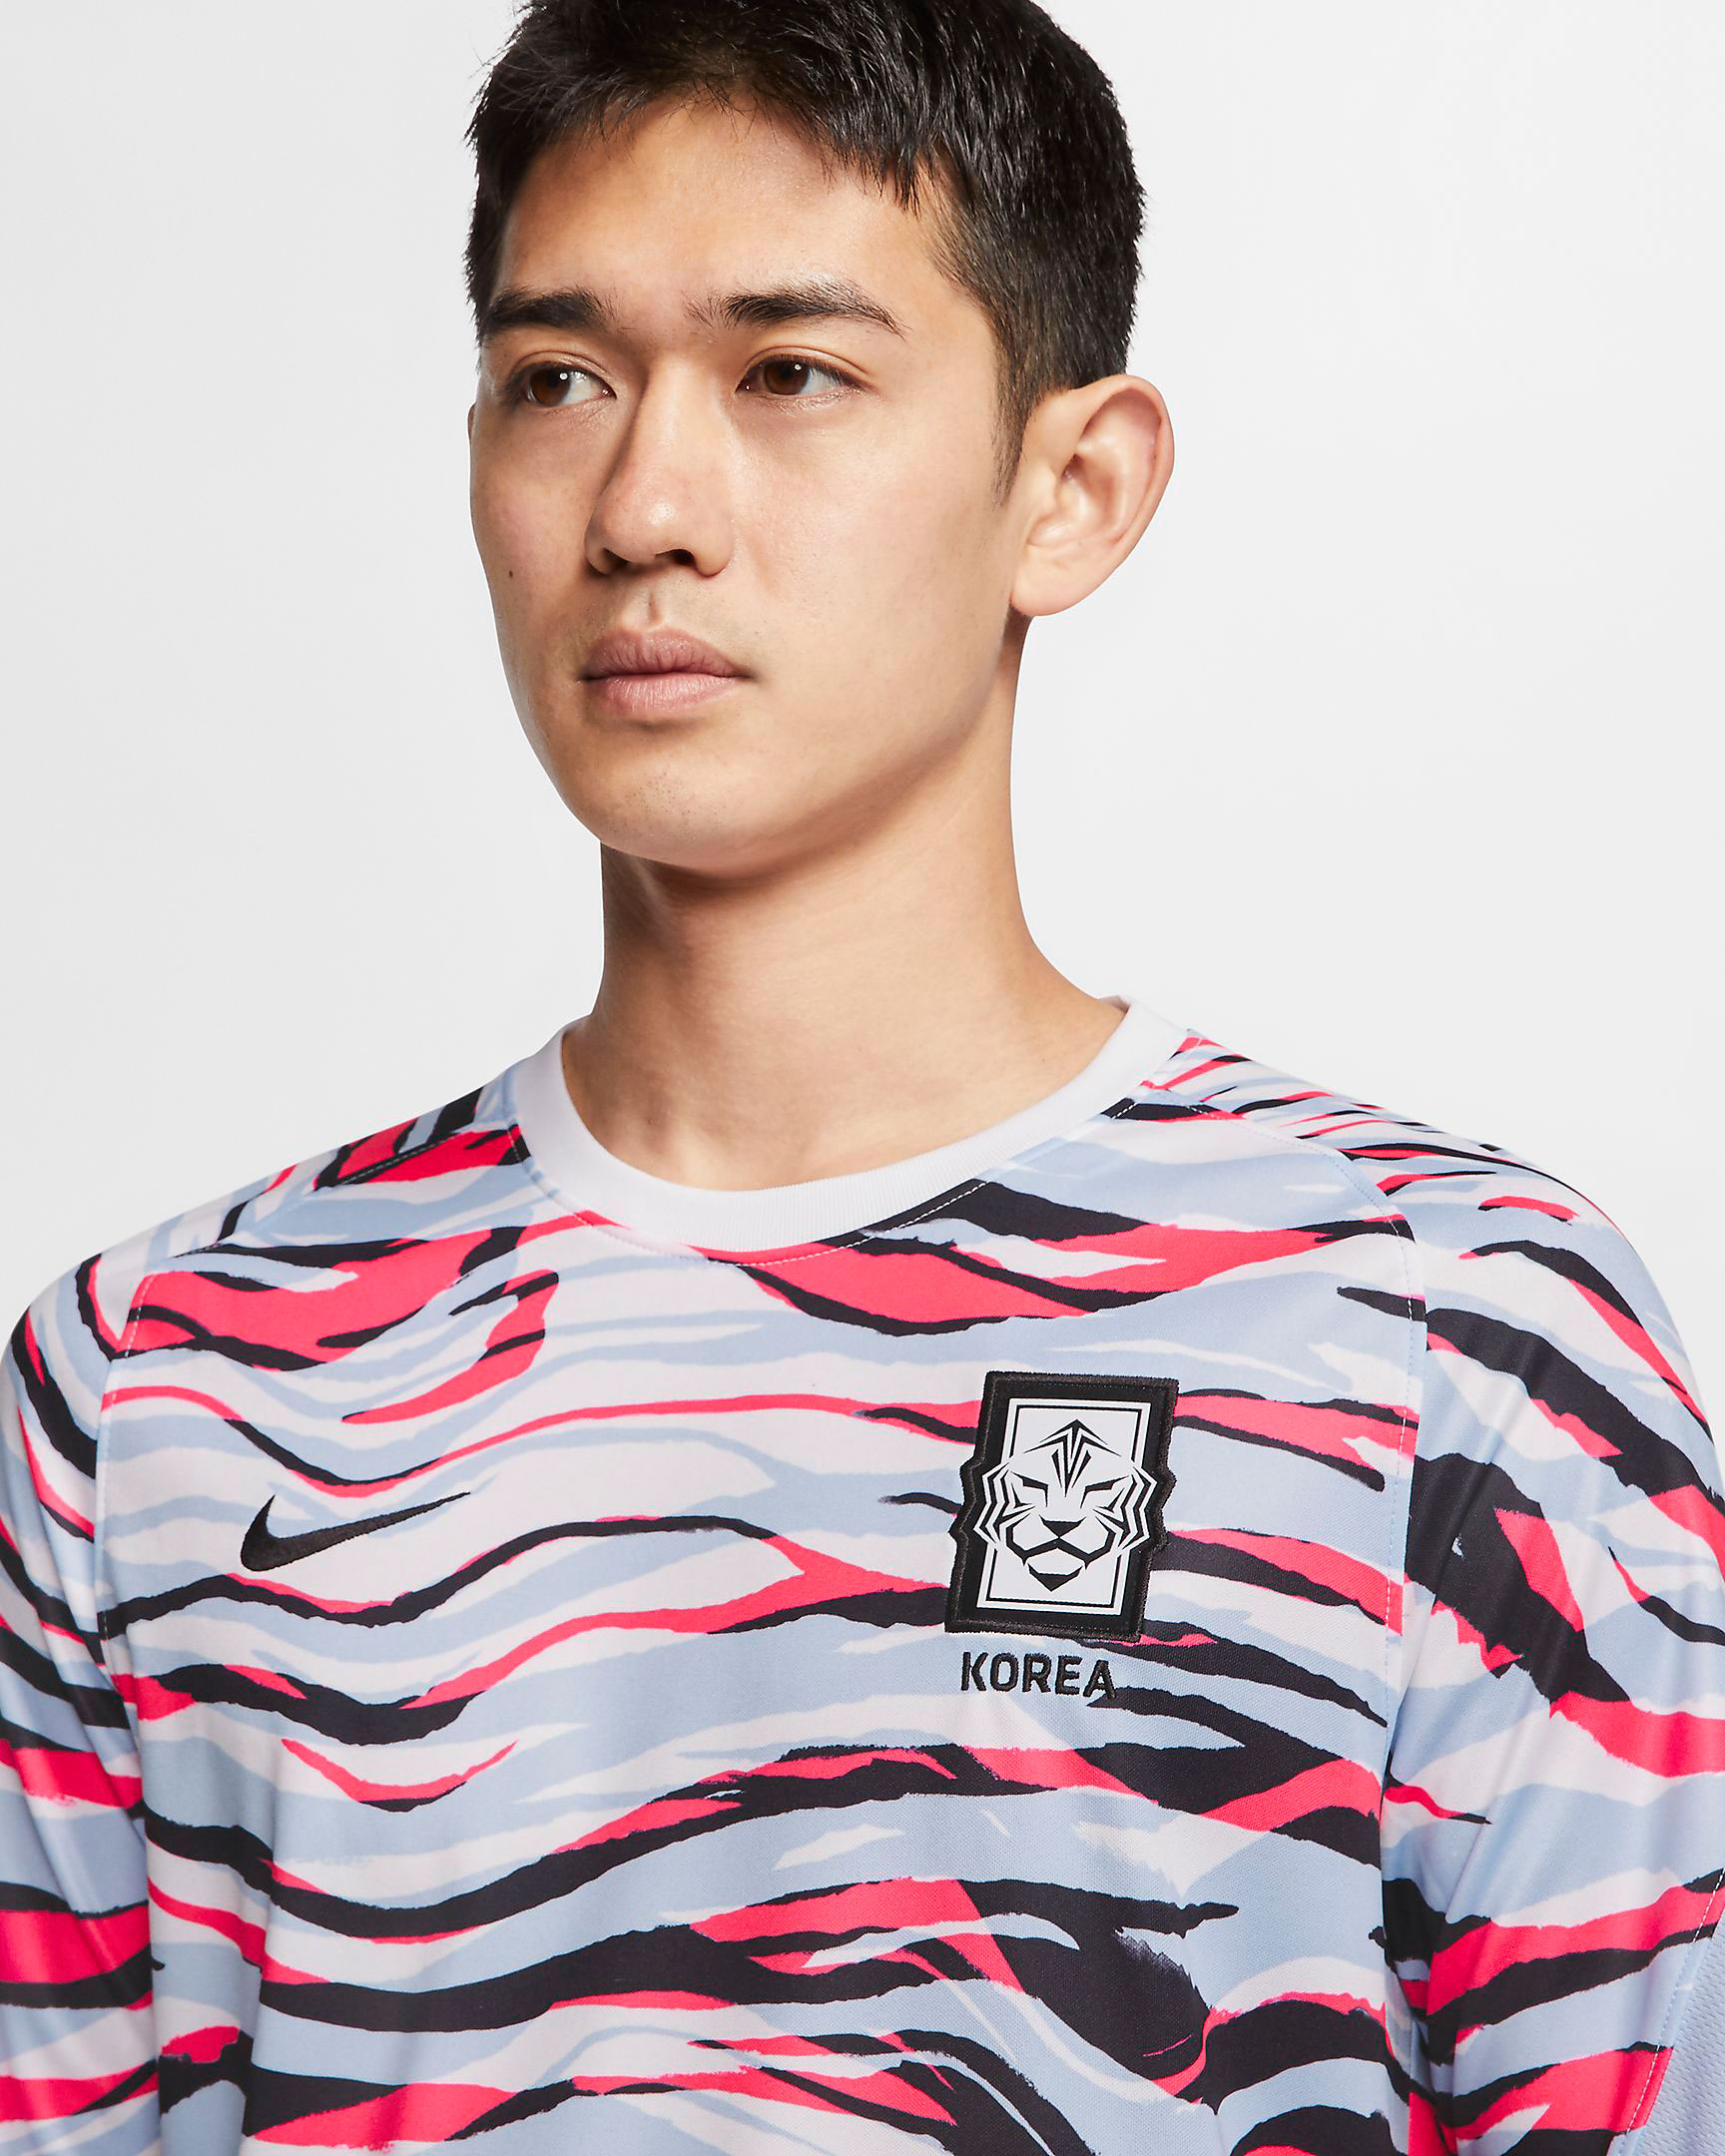 nike-korea-soccer-top-jersey-shirt-3